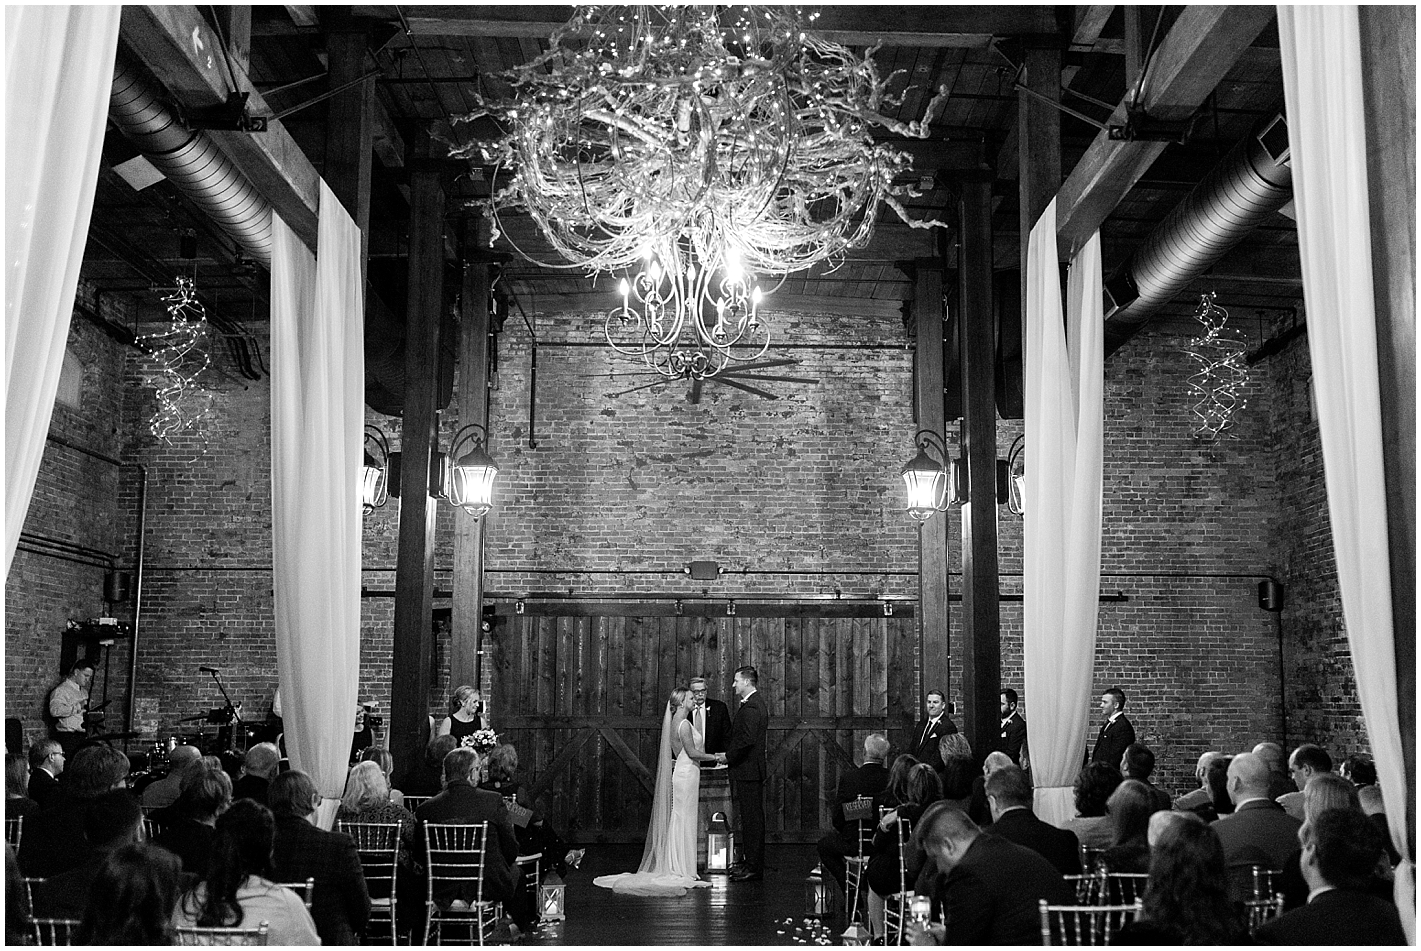 High ceiling Wedding ceremony venue Photo by Alyssa Parker Photography